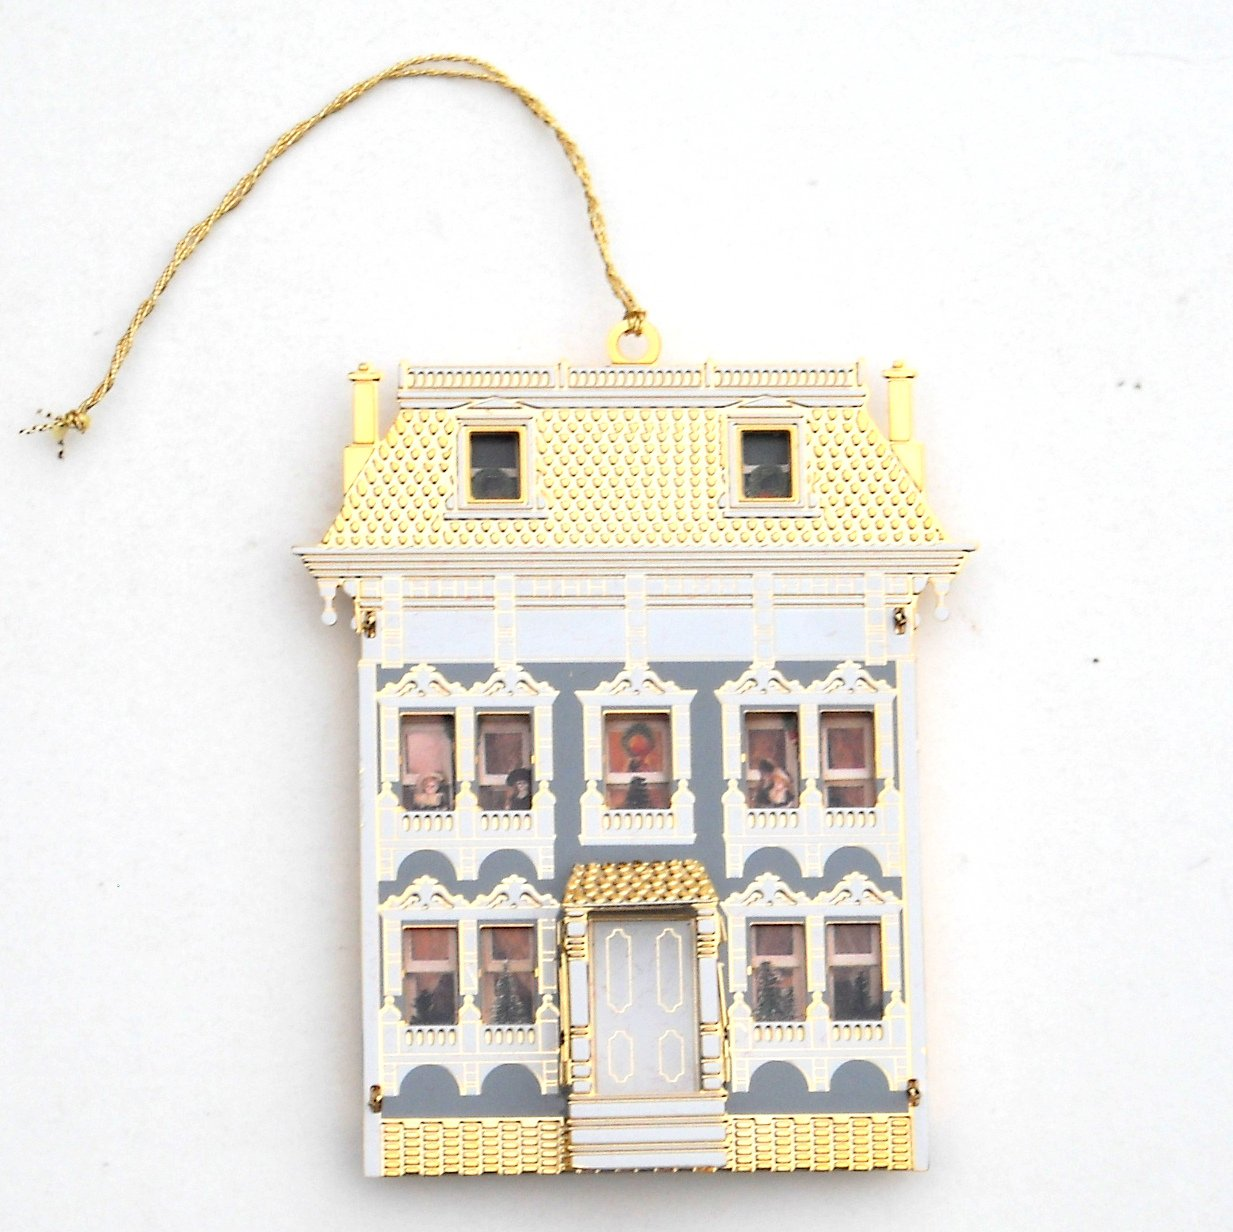 Bing & Grondahl Doll House Collection Dibb House 24k Gold Finish Christmas Ornament